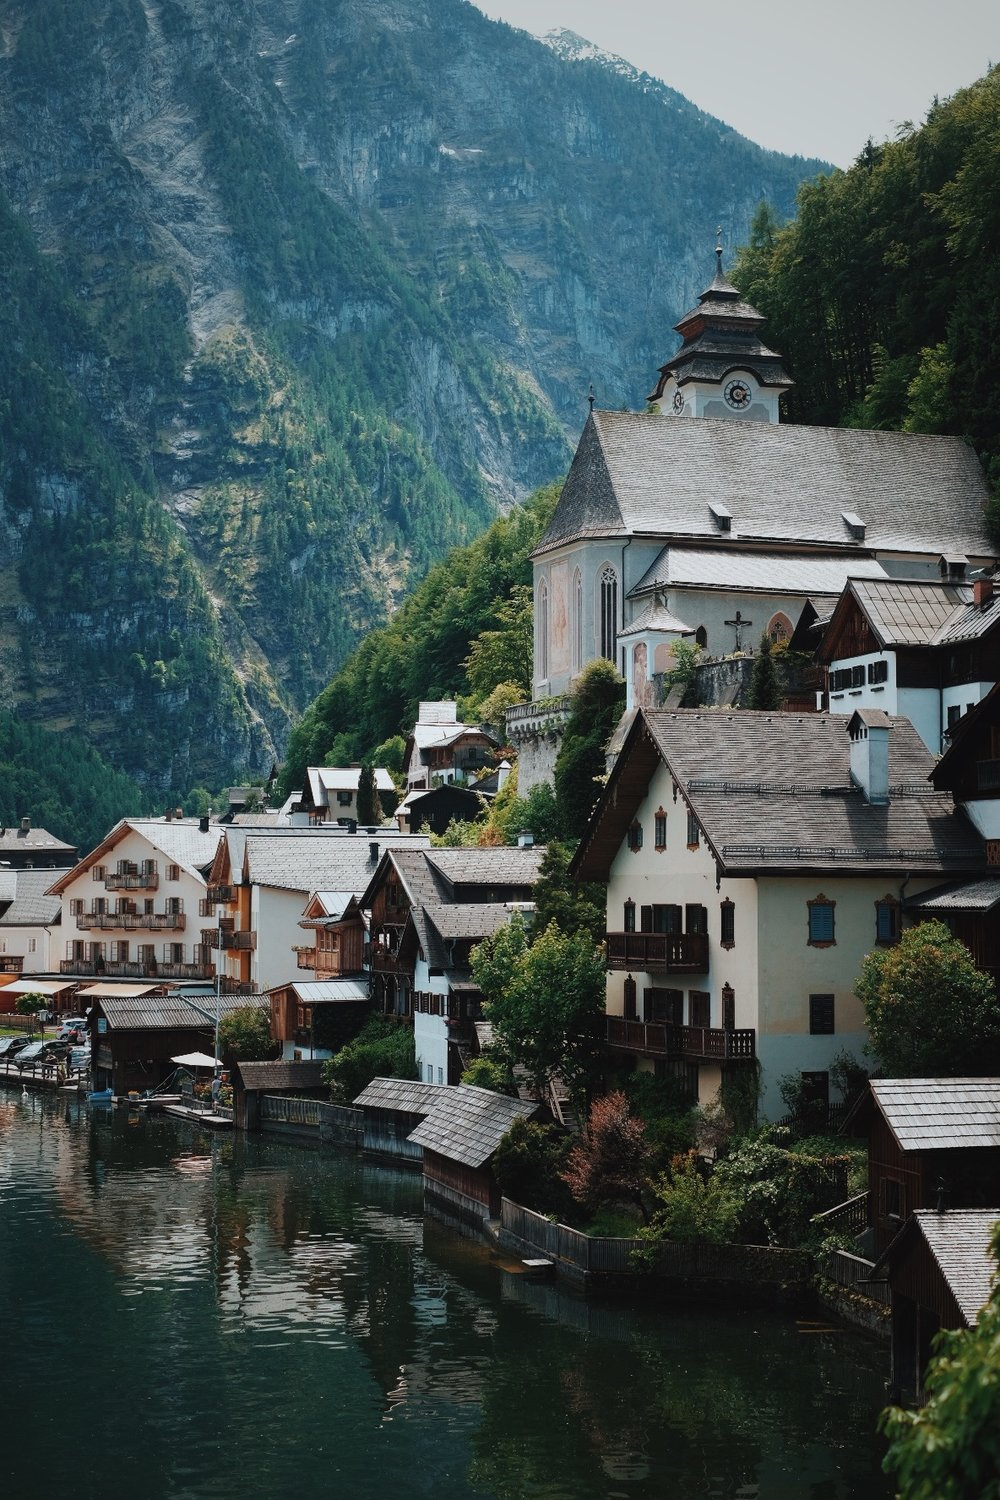 The heart of Hallstatt, a small city in Upper Austria.